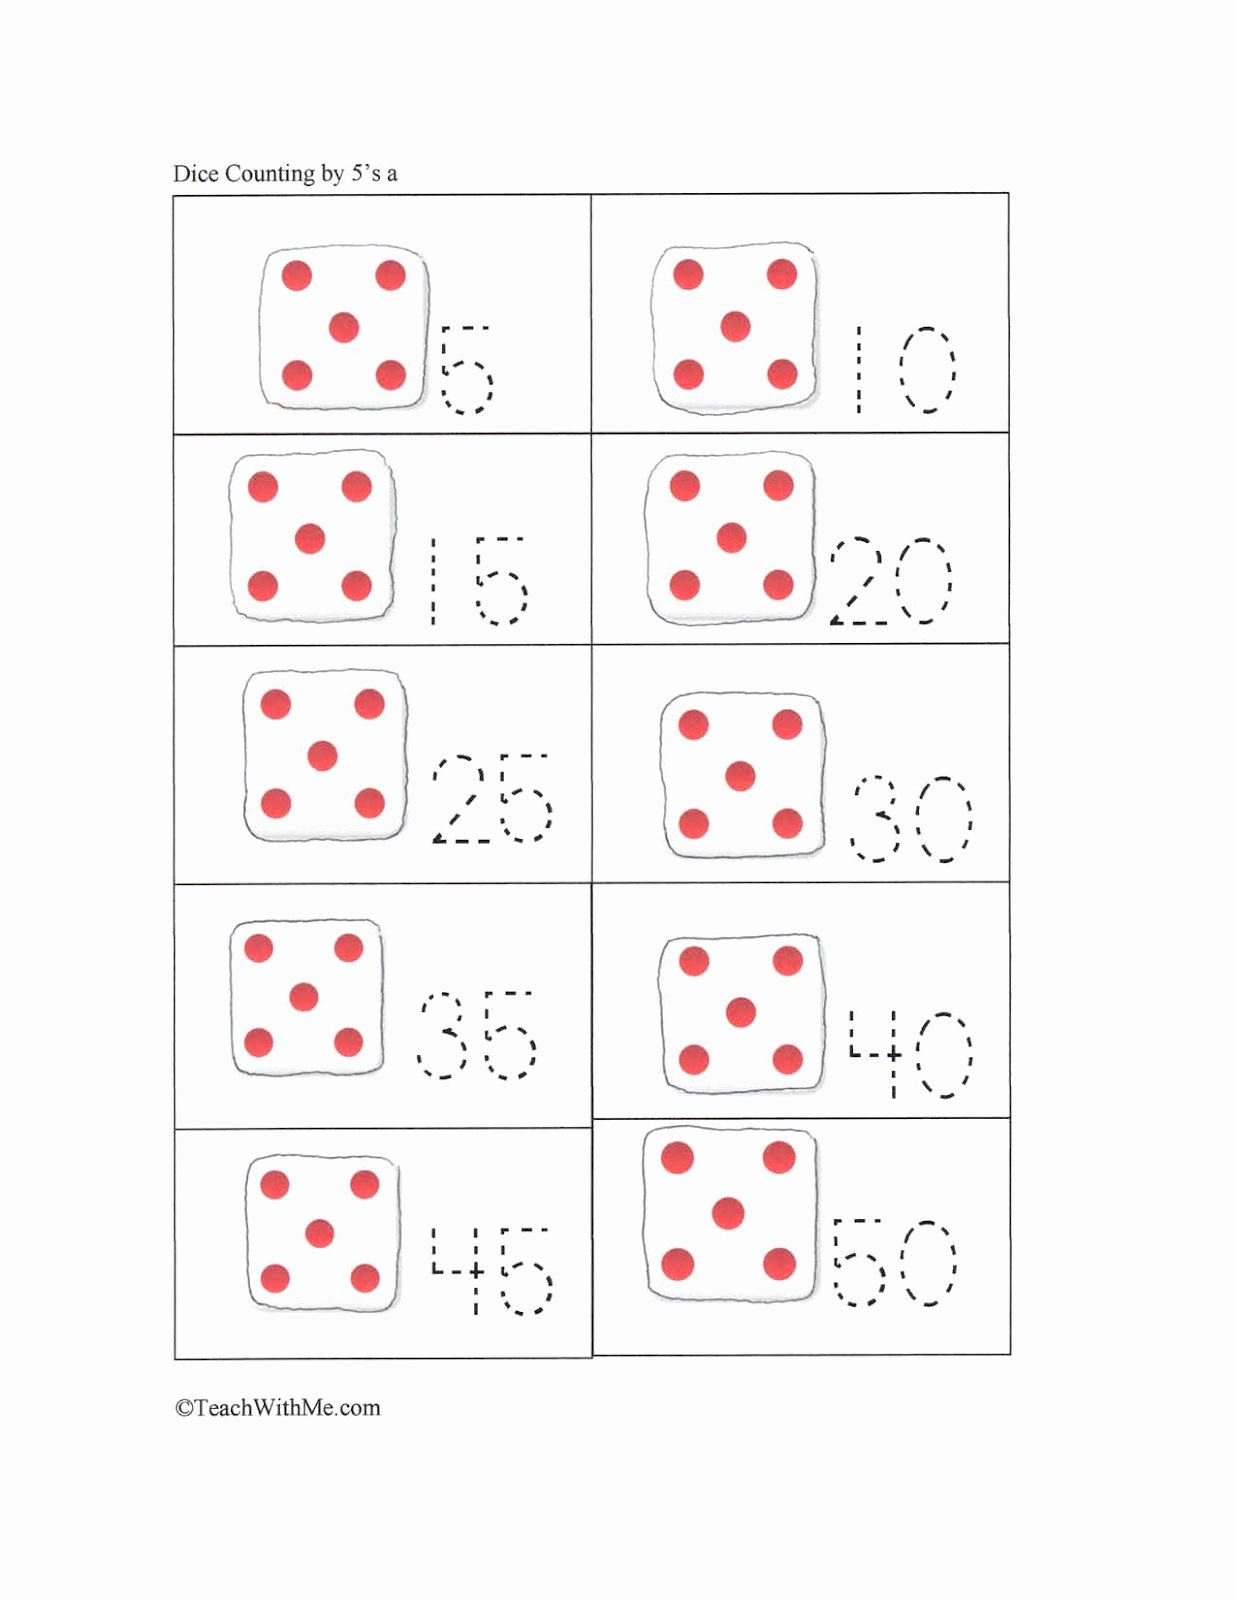 Counting by 5s Worksheet Unique Stuff to Play & Make Dice Games Classroom Freebies